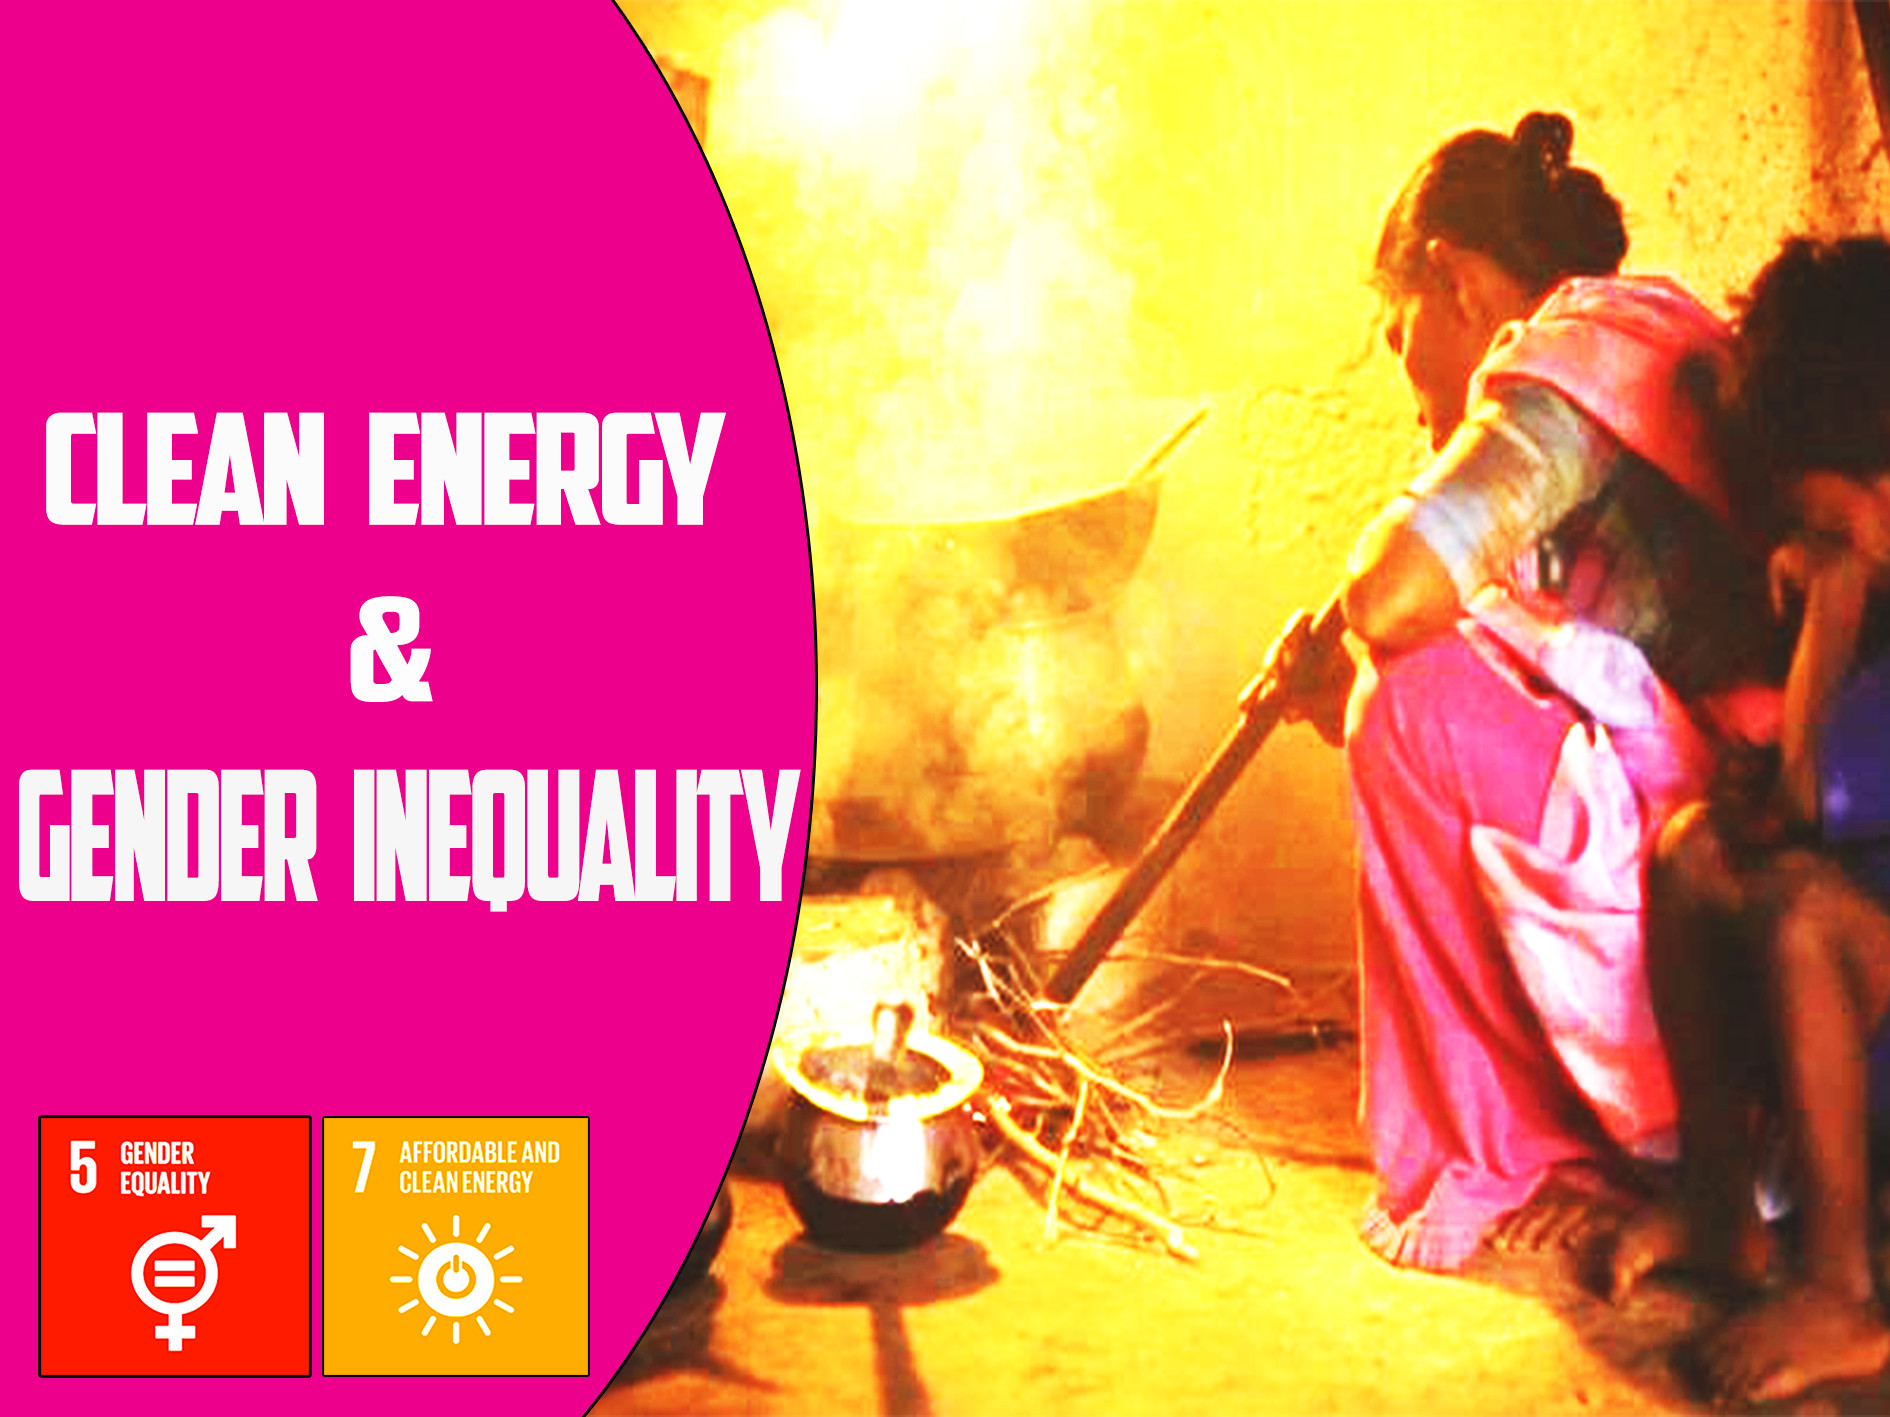 CLEAN ENERGY AND GENDER INEQUALITY